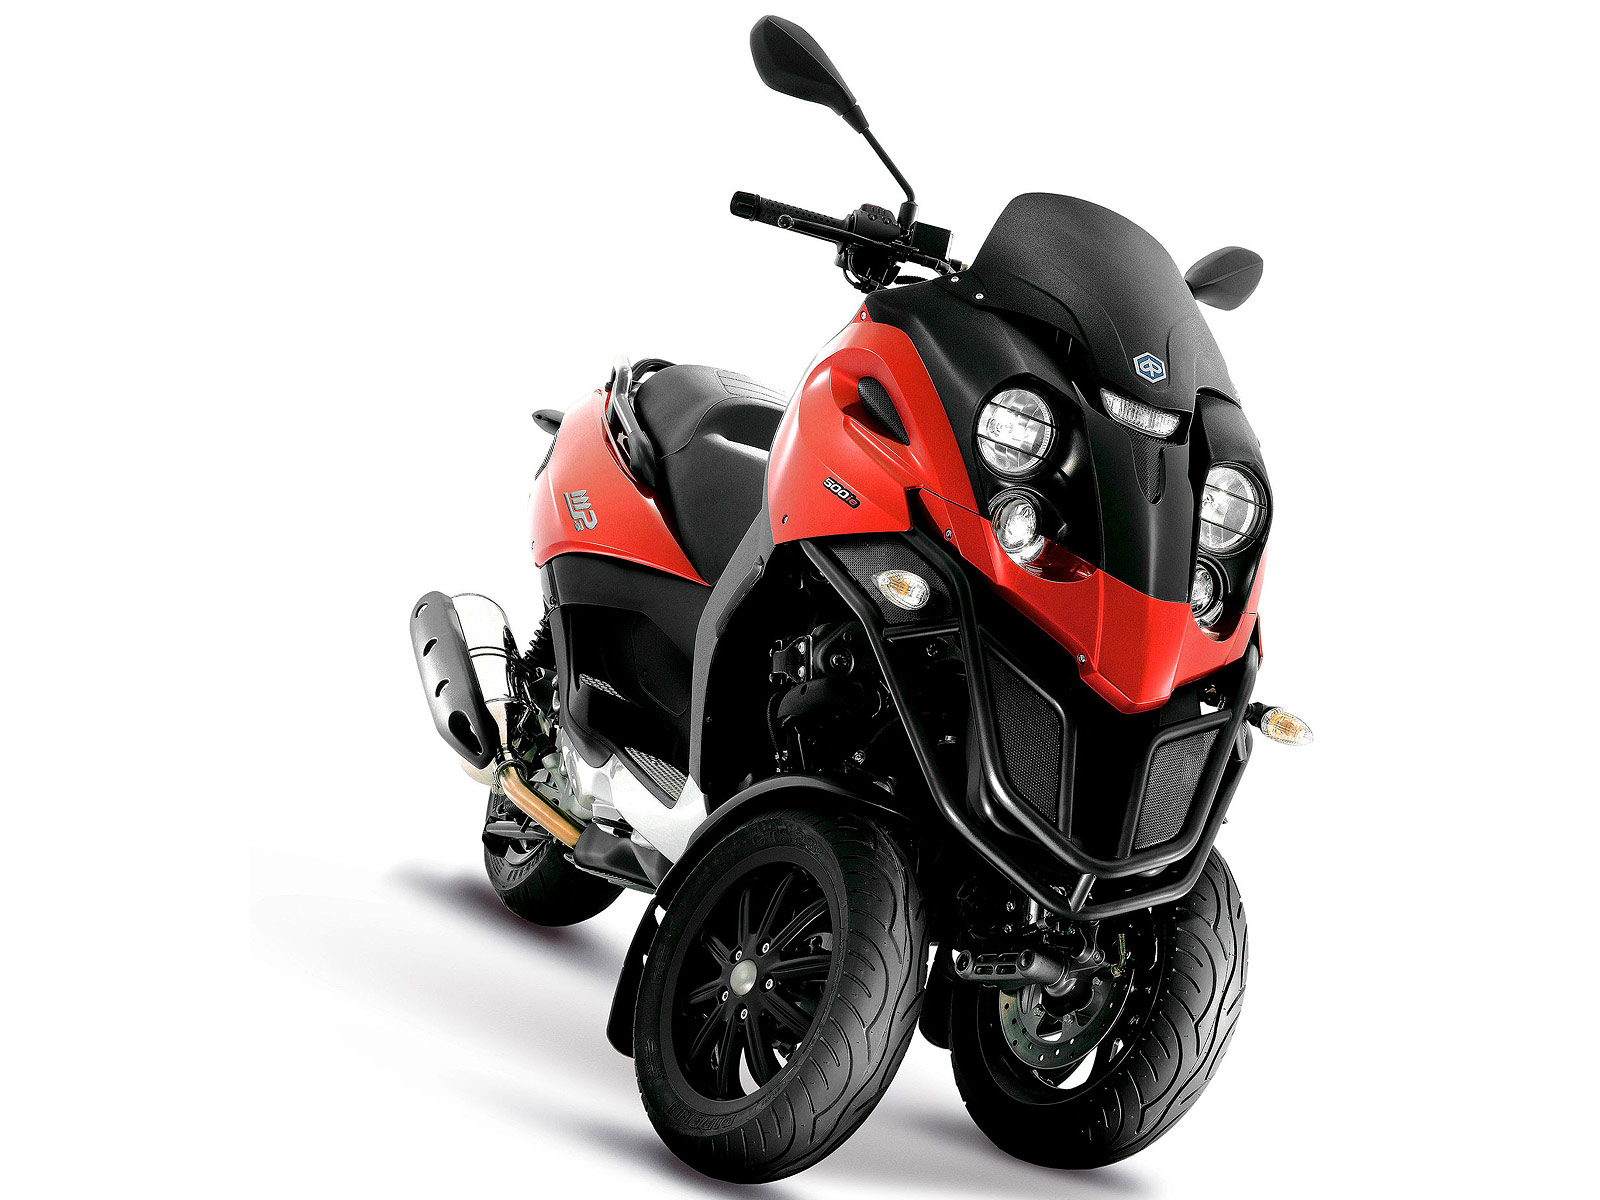 2013 piaggio mp3 500 auto insurance information scooter pictures. Black Bedroom Furniture Sets. Home Design Ideas